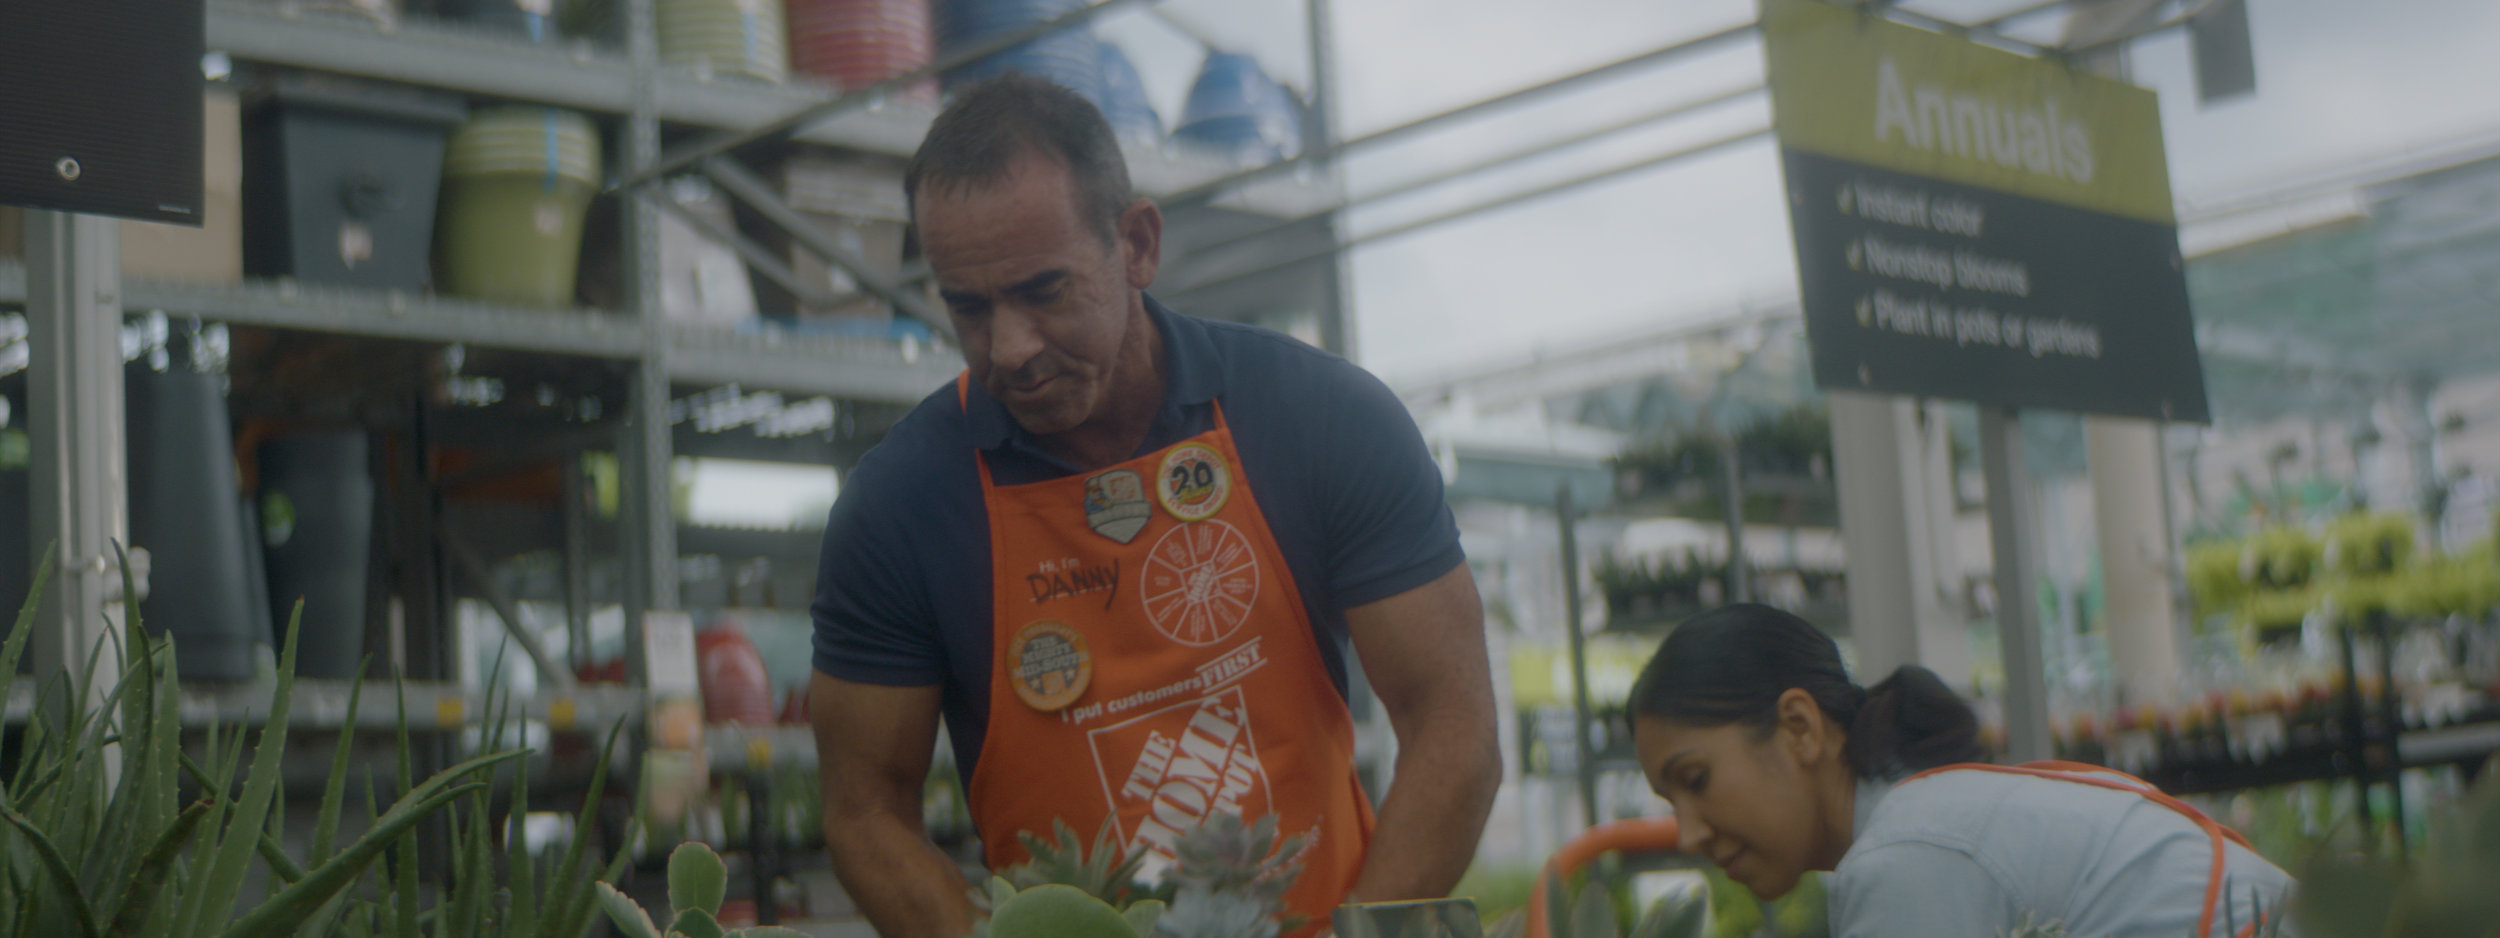 Home Depot Foundation // Veterans Day